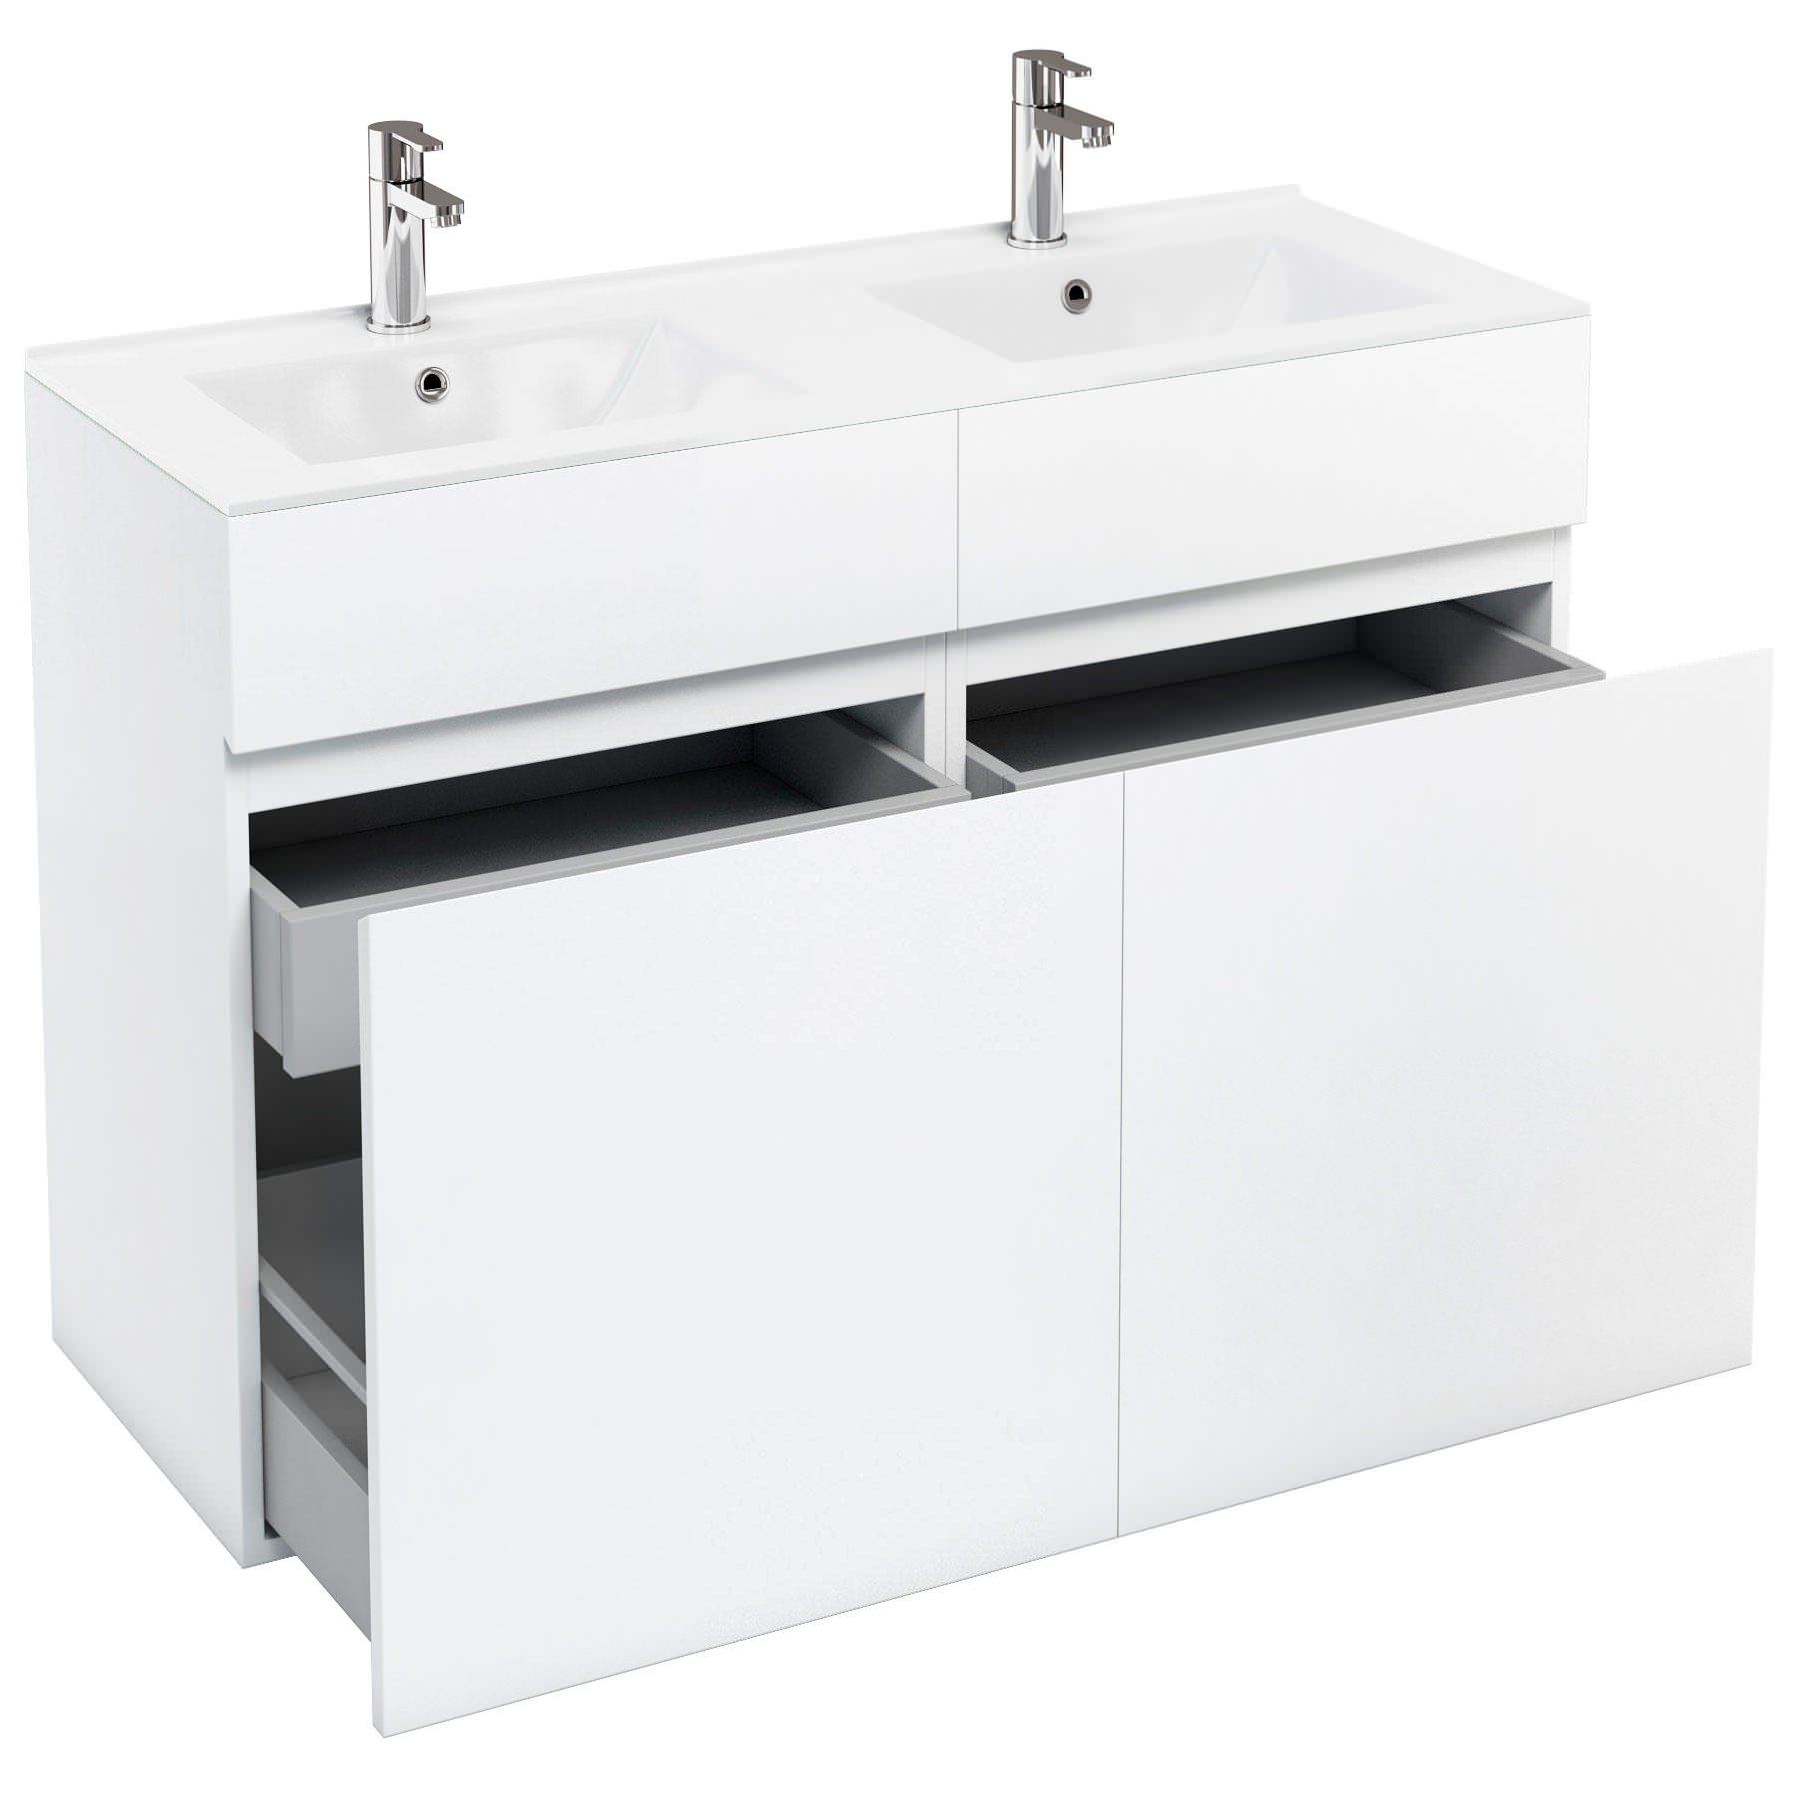 double bowl vanity units. britton aqua cabinets d450 white double drawer units with bowl basin vanity h